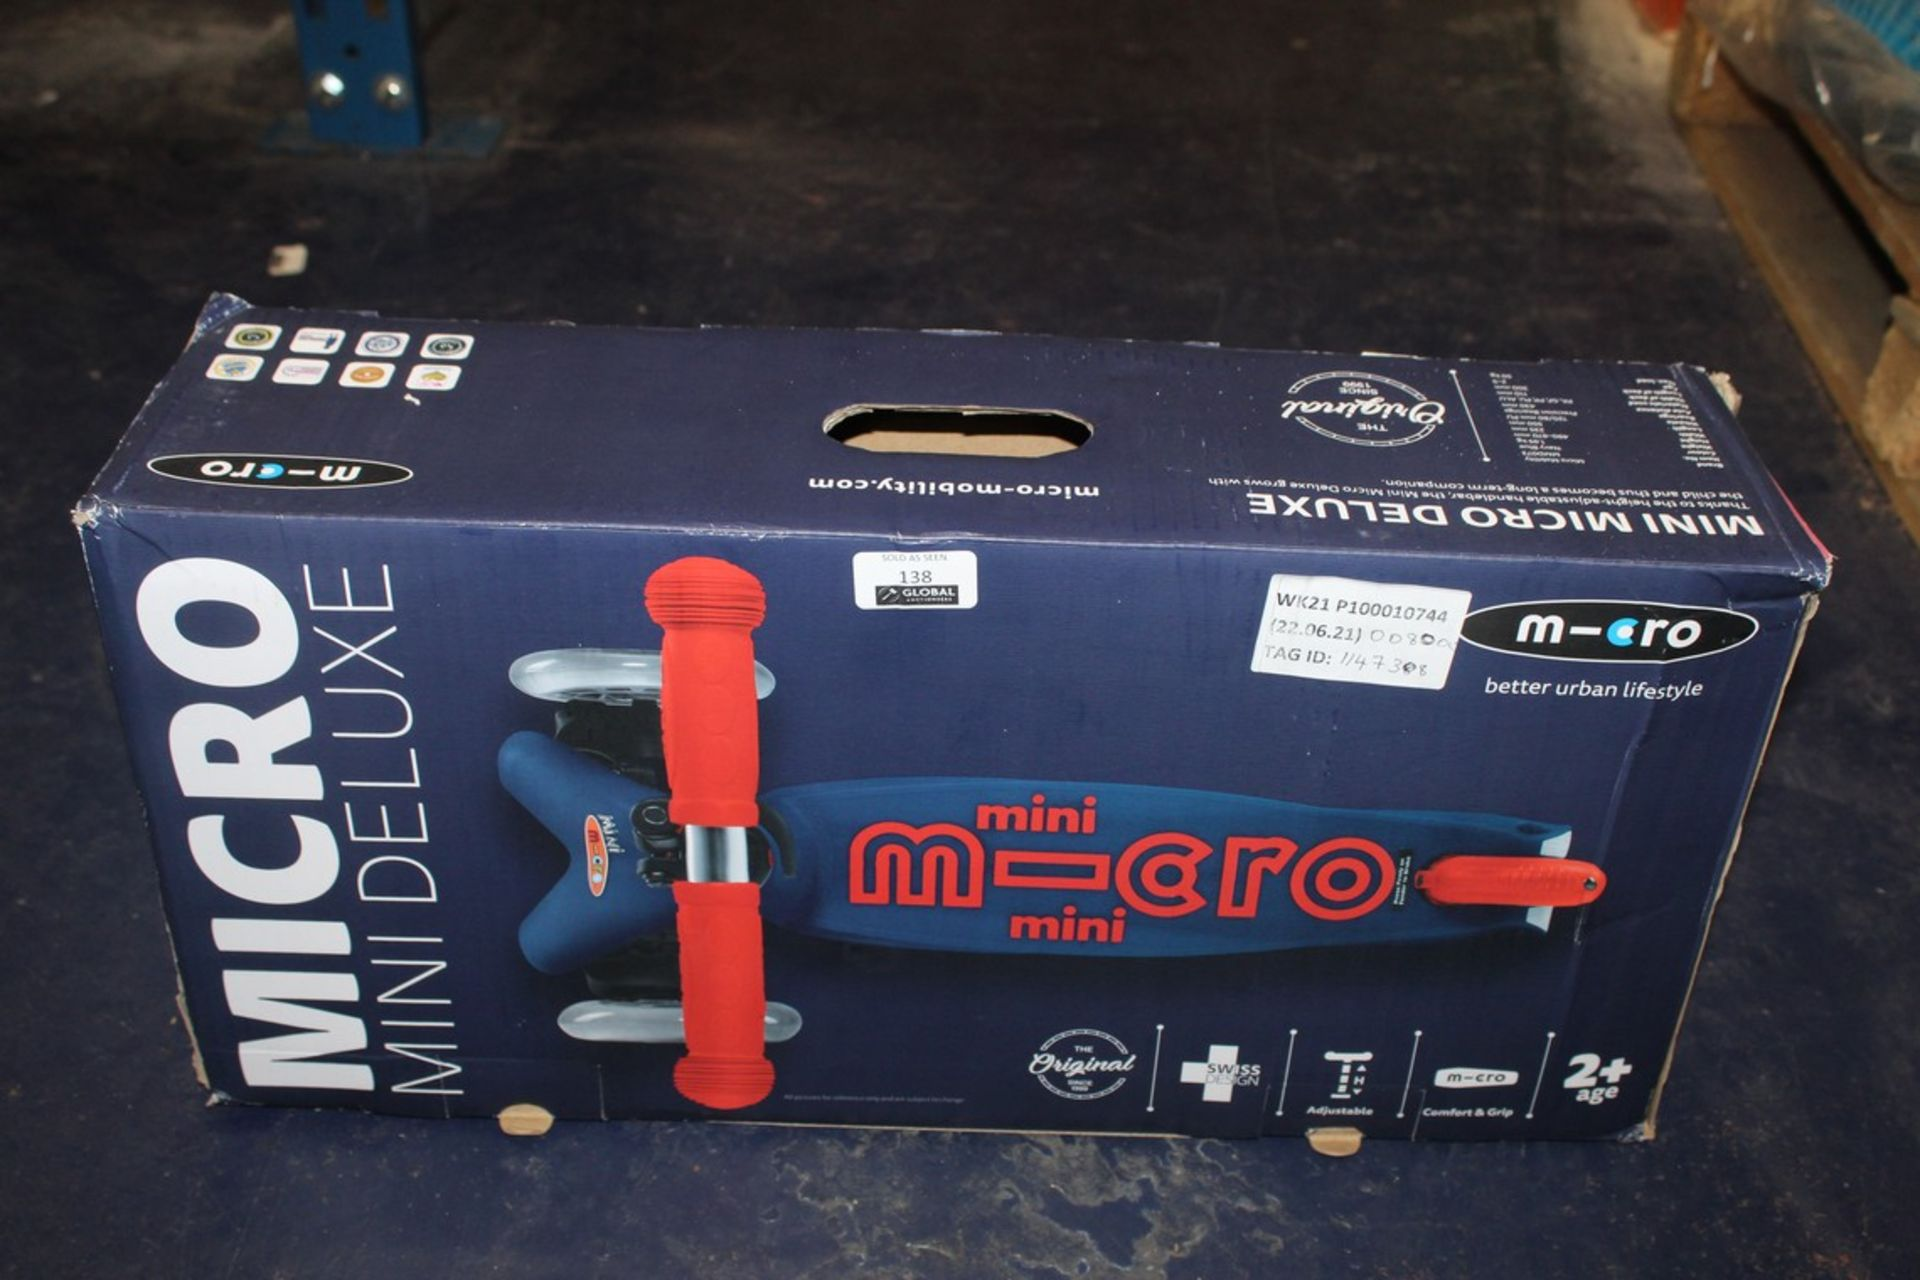 Lot 138 - Boxed Micro Mini Deluxe Scooter RRP £80 (1147388) (Pictures Are For Illustration Purposes Only) (